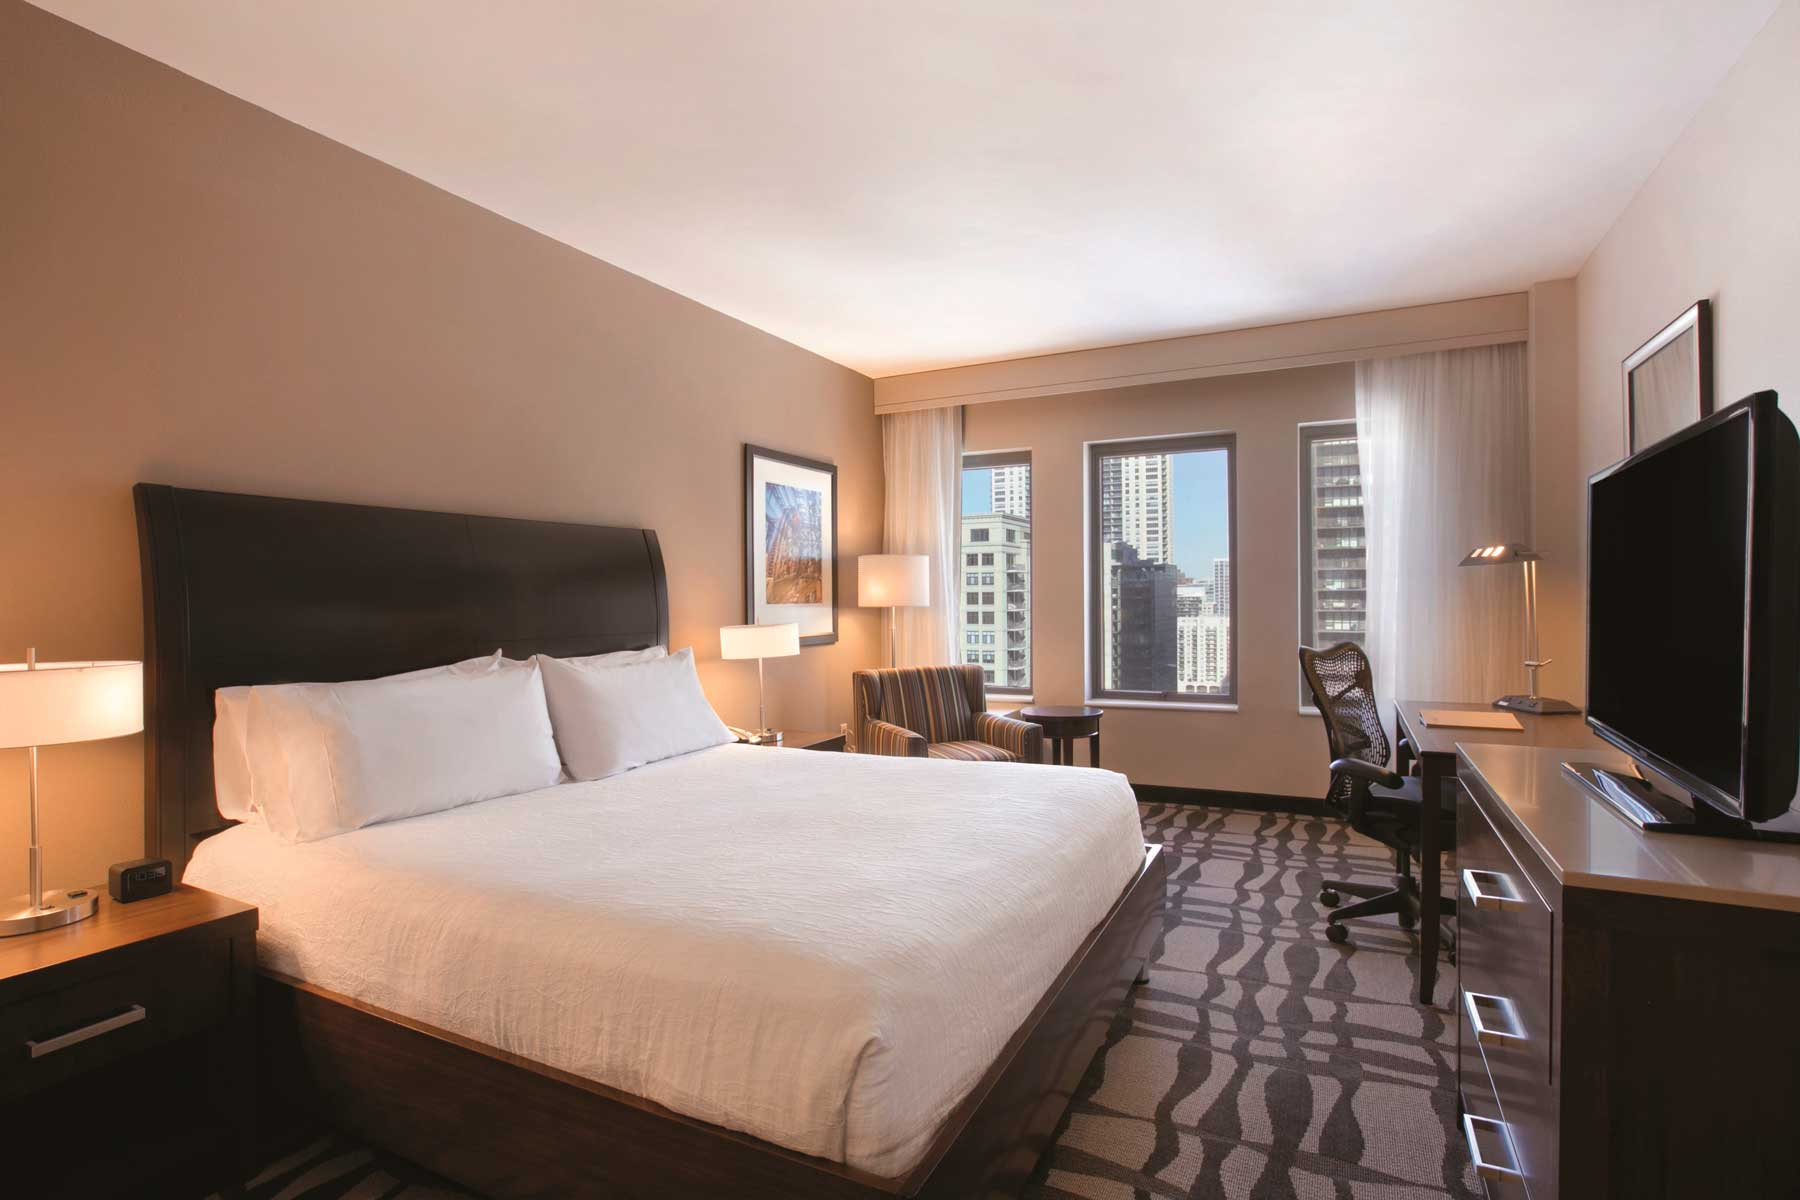 Best Cheap Rated Hotel in Chicago-under 30 Dollar